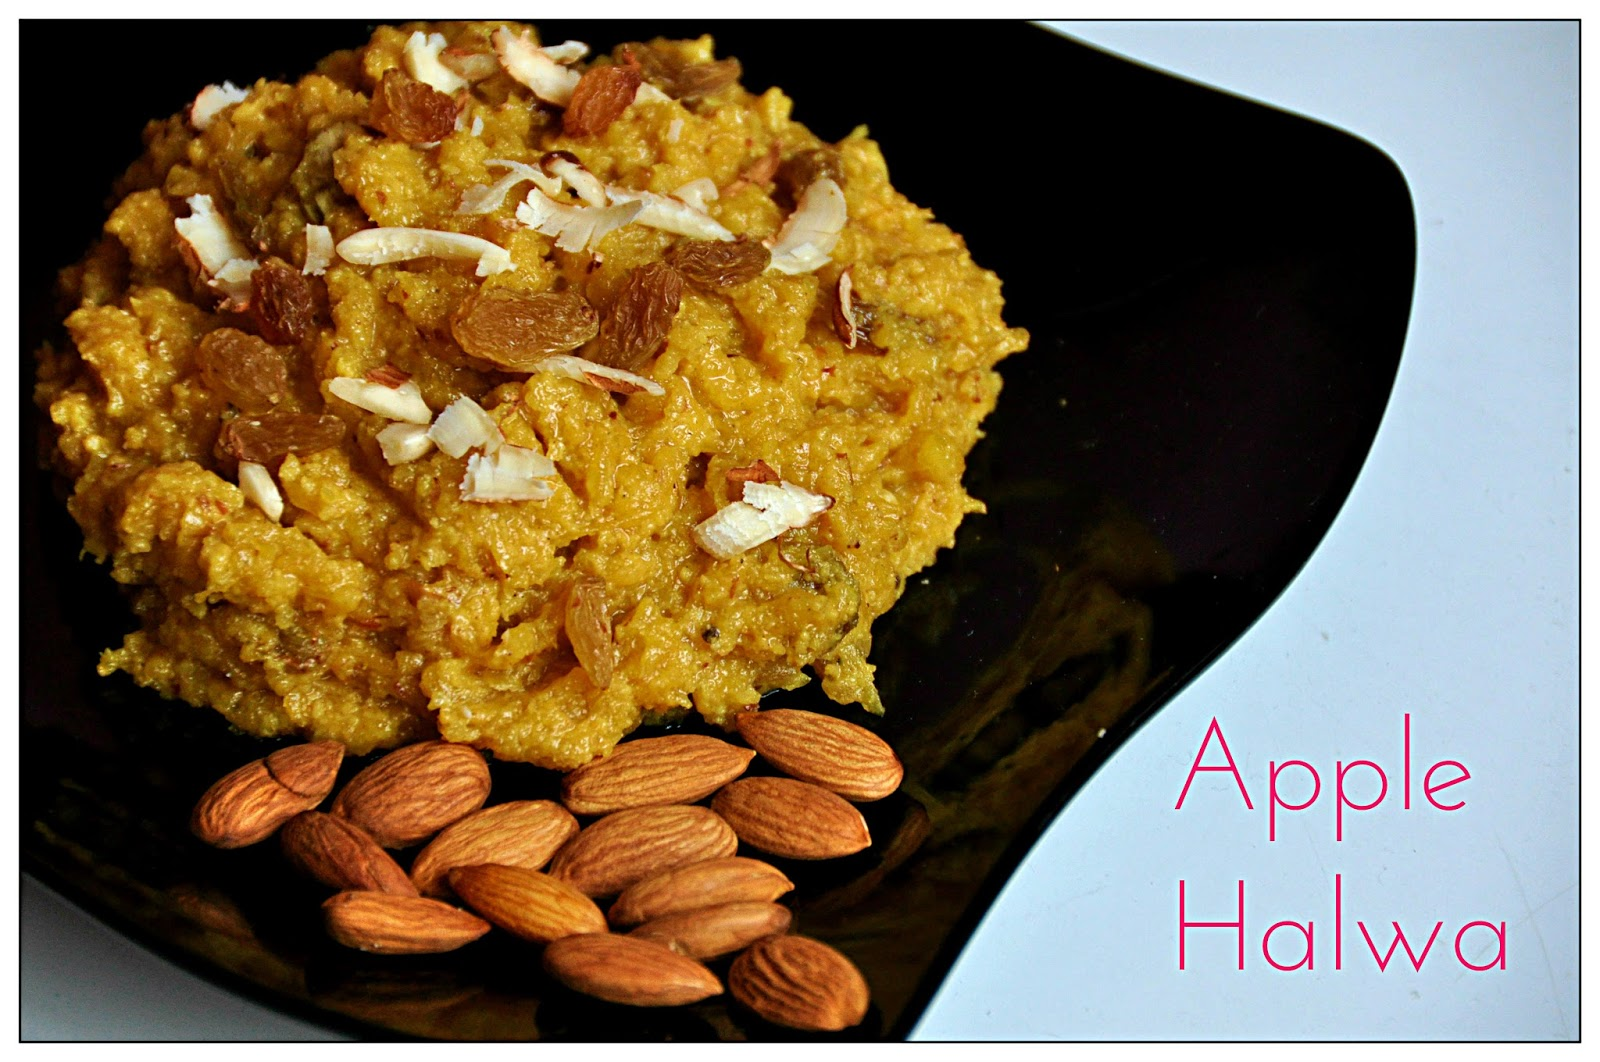 Curries & Stories: Apple Halwa (Apple Pudding)